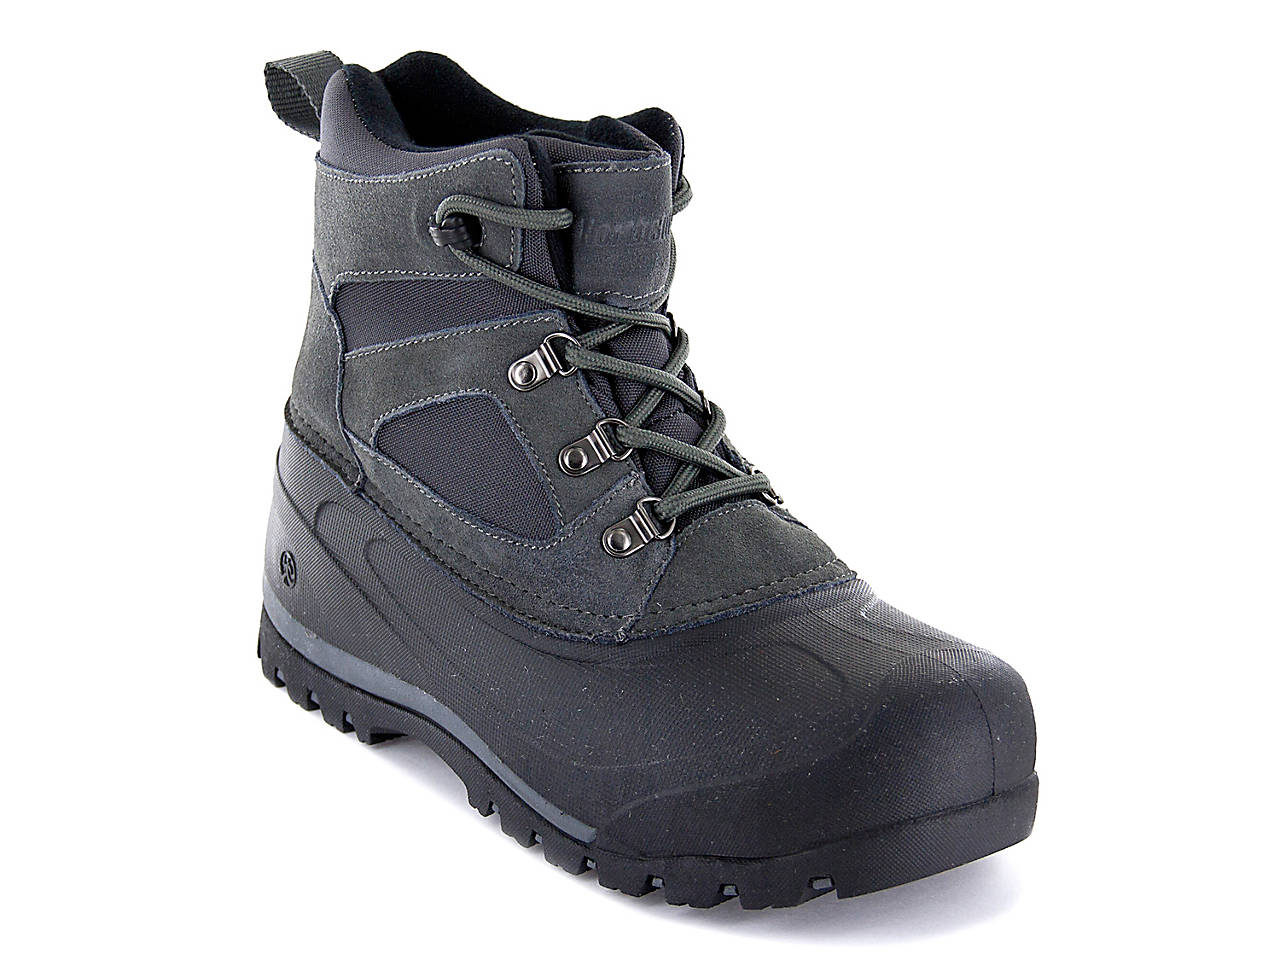 152ffda44392 Northside Tundra Snow Boot Men s Shoes